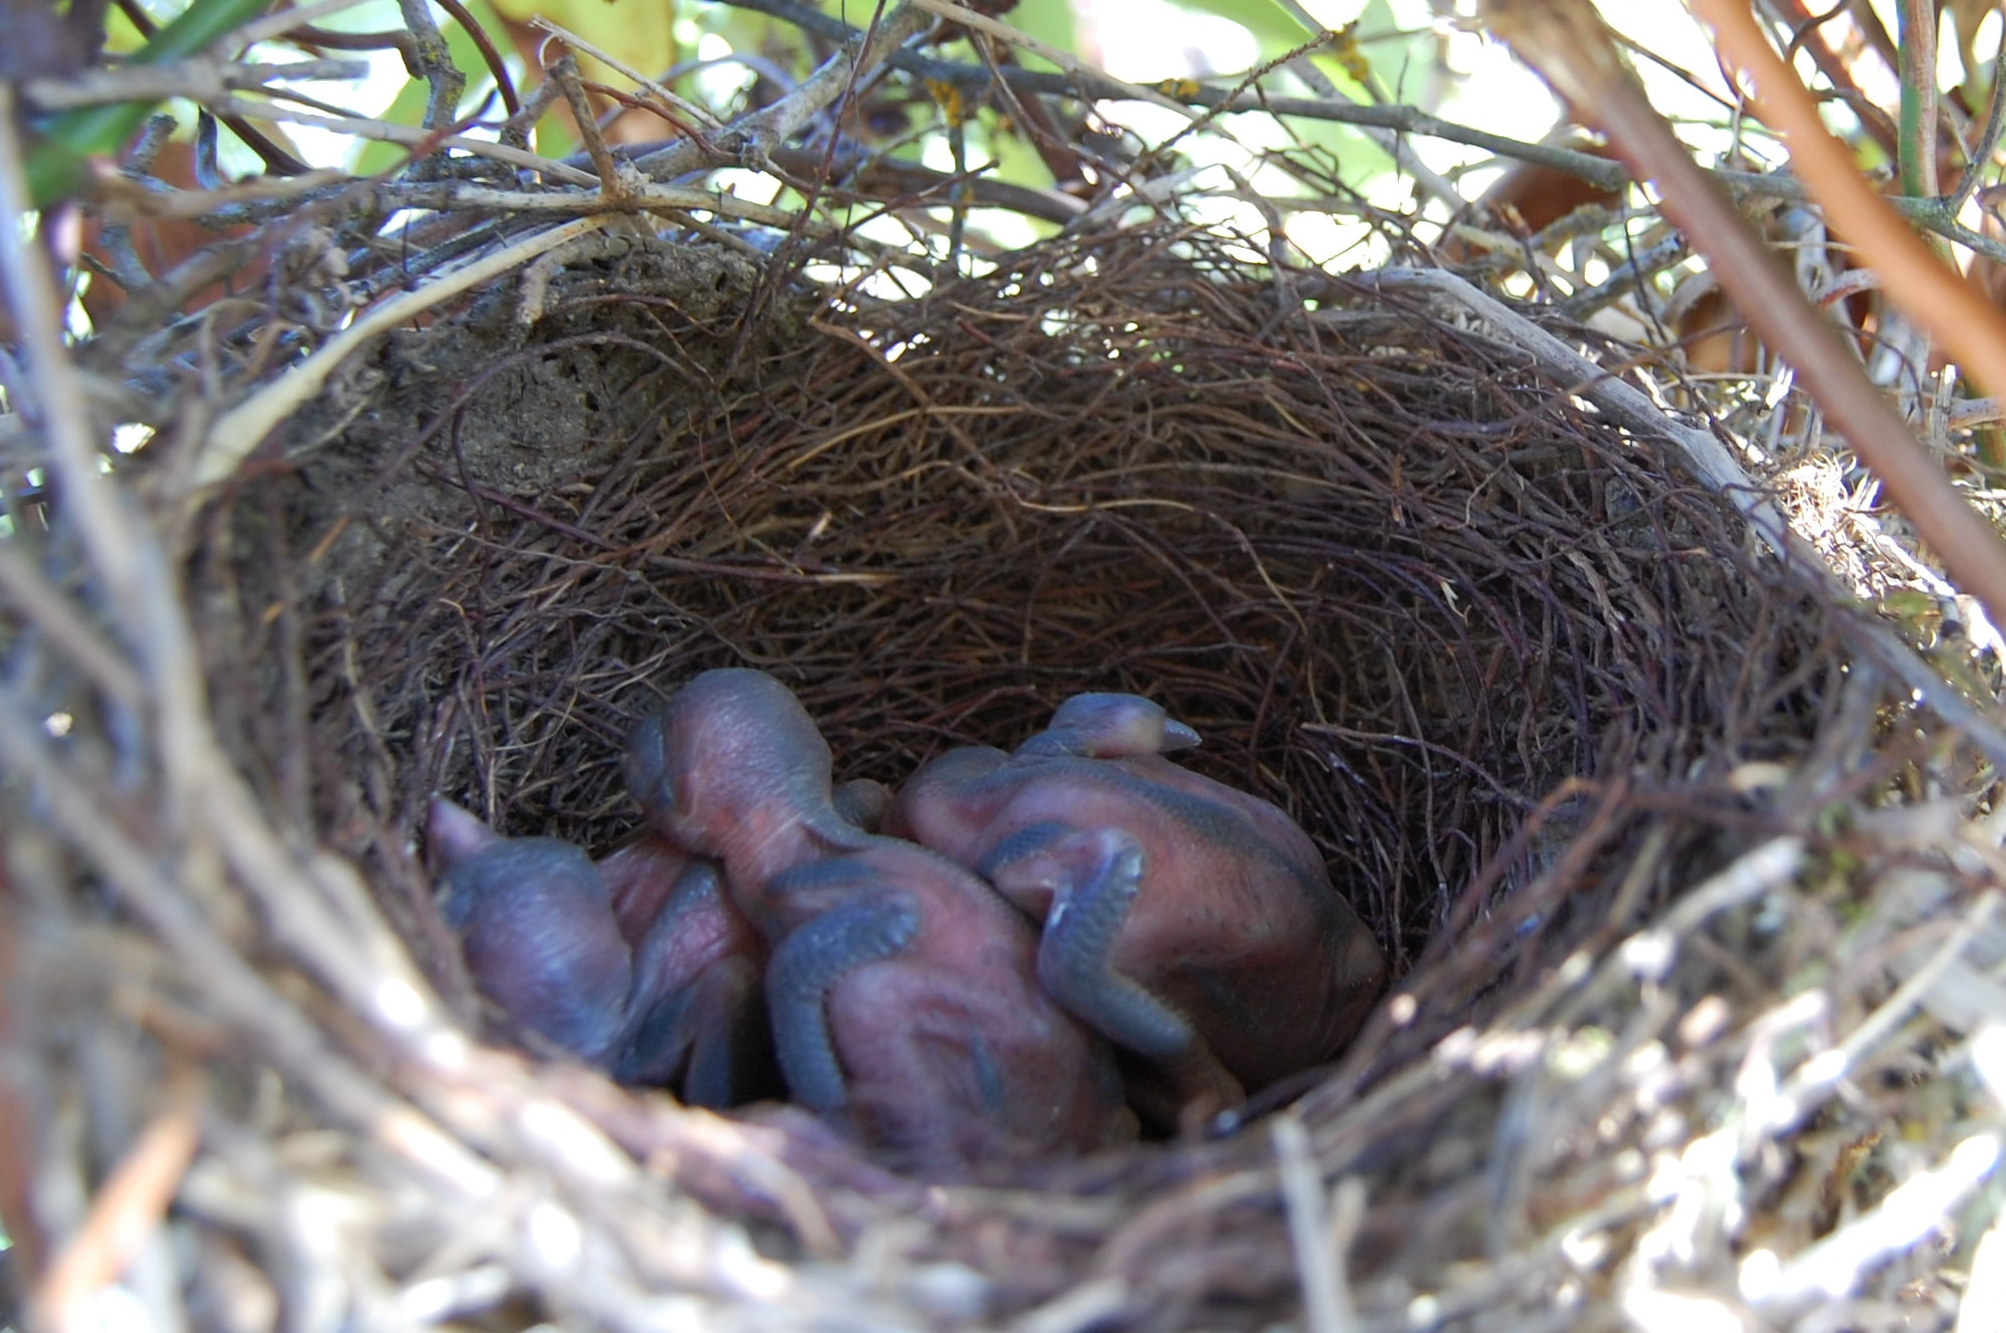 Three featherless Bluejay bird chickens sleeping in a nest